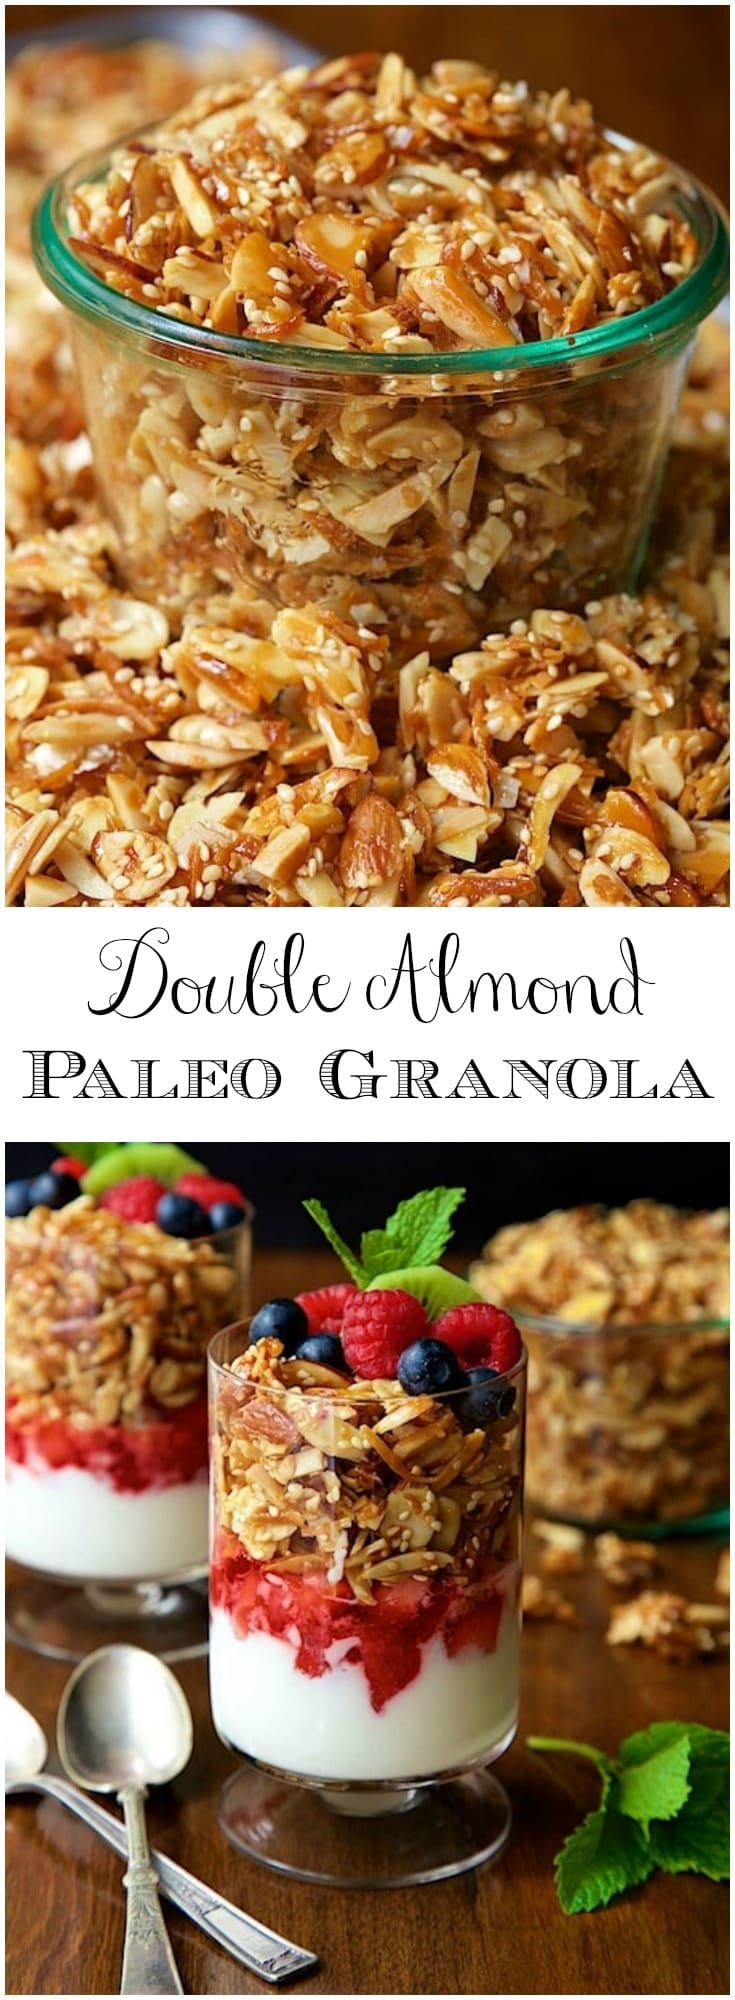 Deliciously addictive, this oat-free granola is easy to throw together with just five basic ingredients! You may never buy granola again!